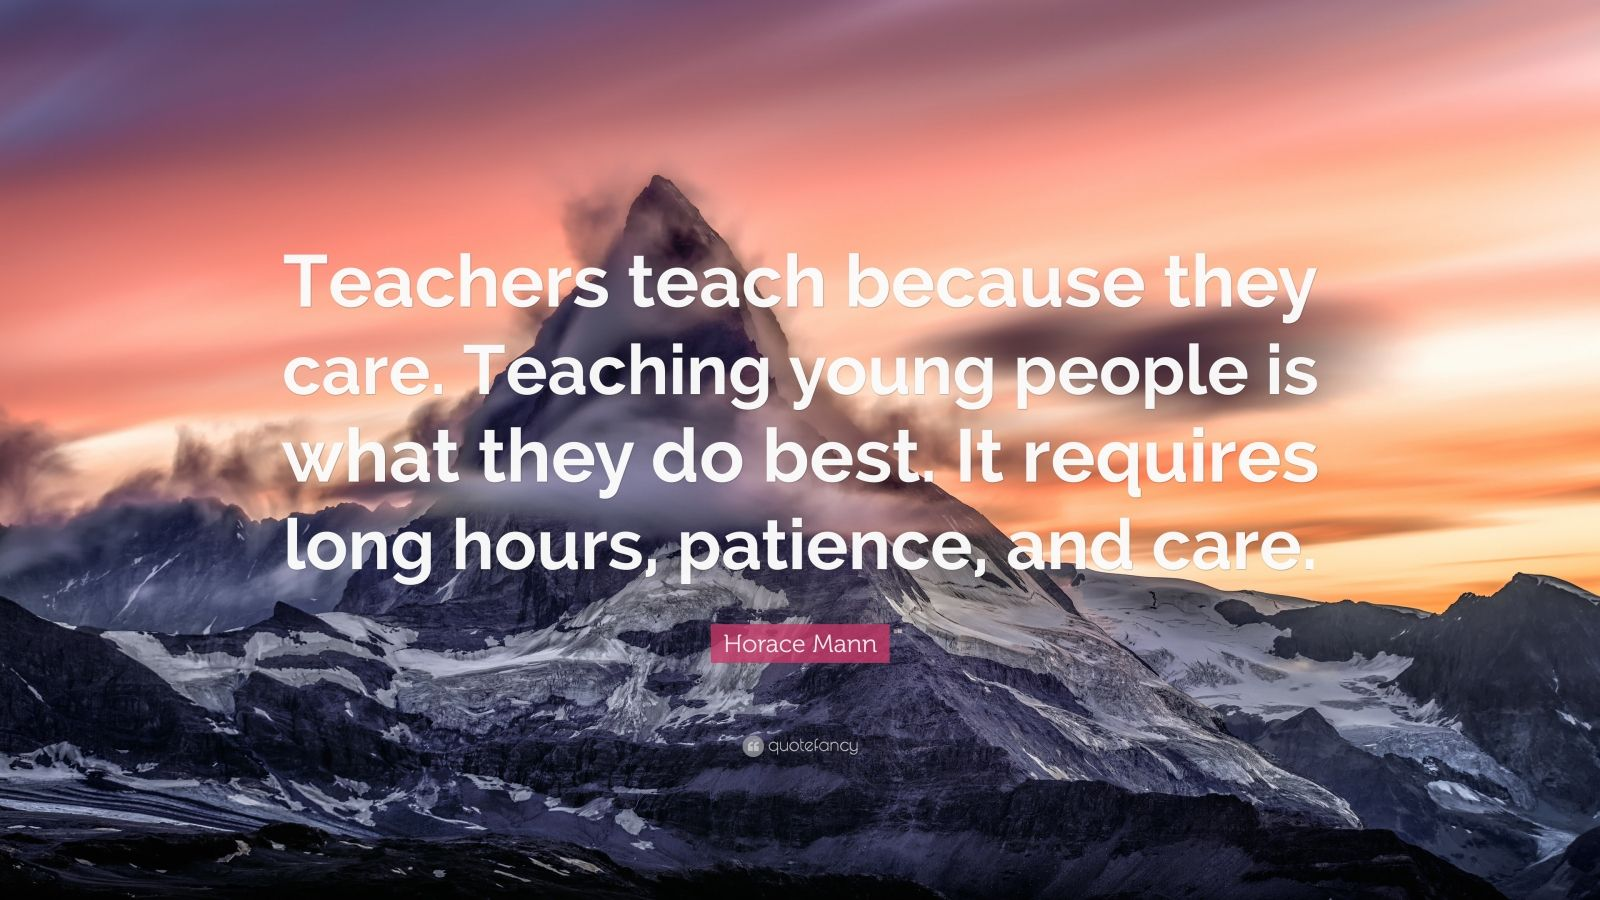 """Horace Mann Quote: """"Teachers teach because they care. Teaching young people is what they do best. It requires long hours, patience, and care."""""""